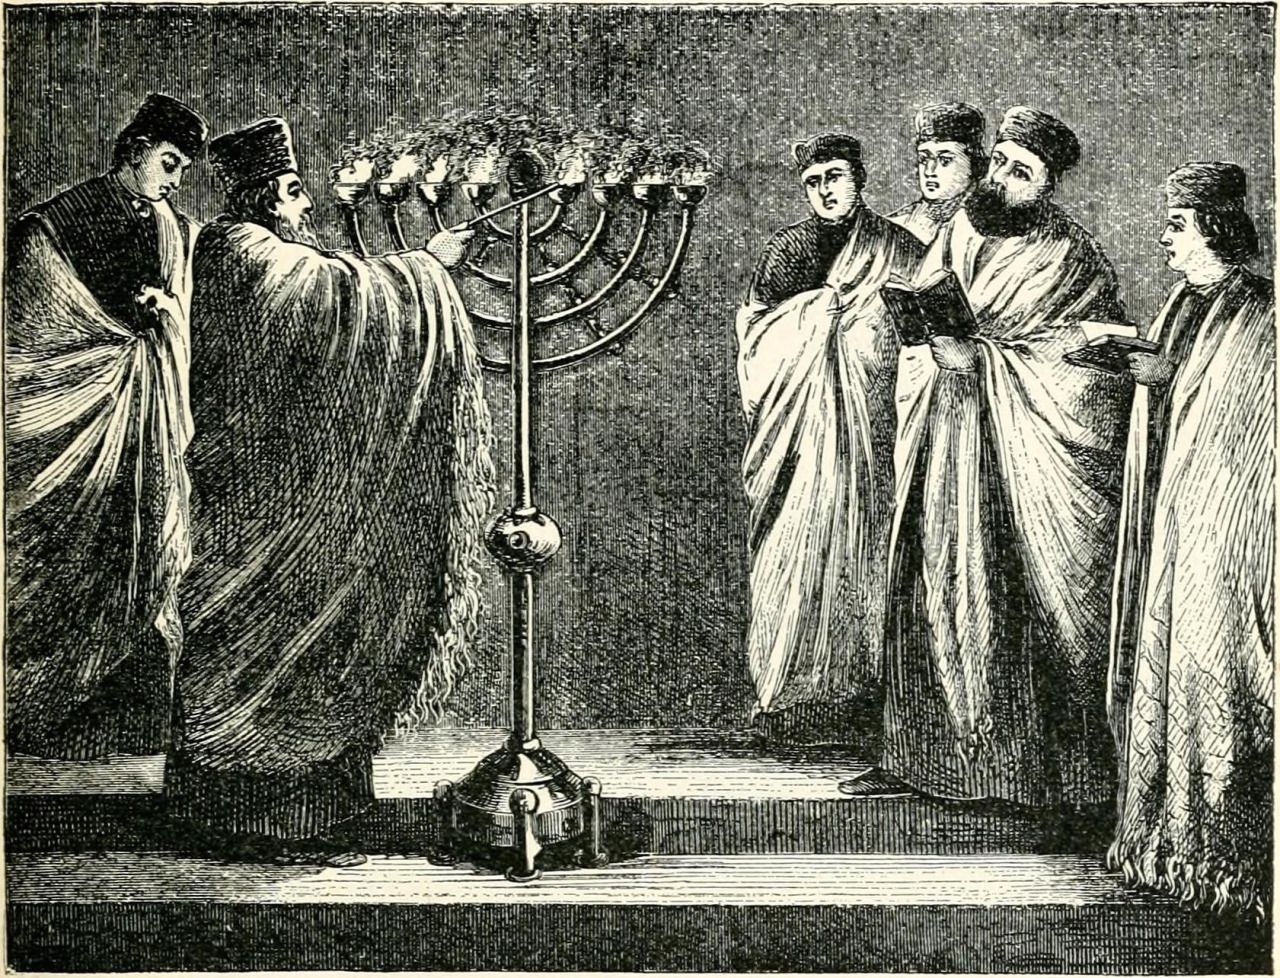 """The Feast of Dedication as Celebrated in an English Synagogue,"" uncredited illustration in ""Historical Sketch of the Jews Since Their Return from Babylon,"" by Bernhard Pick, The Open Court, May 1897, 273. (In the public domain.) חנכה חנוכה חנוכּה Hanukkah Ḥanukkâ"